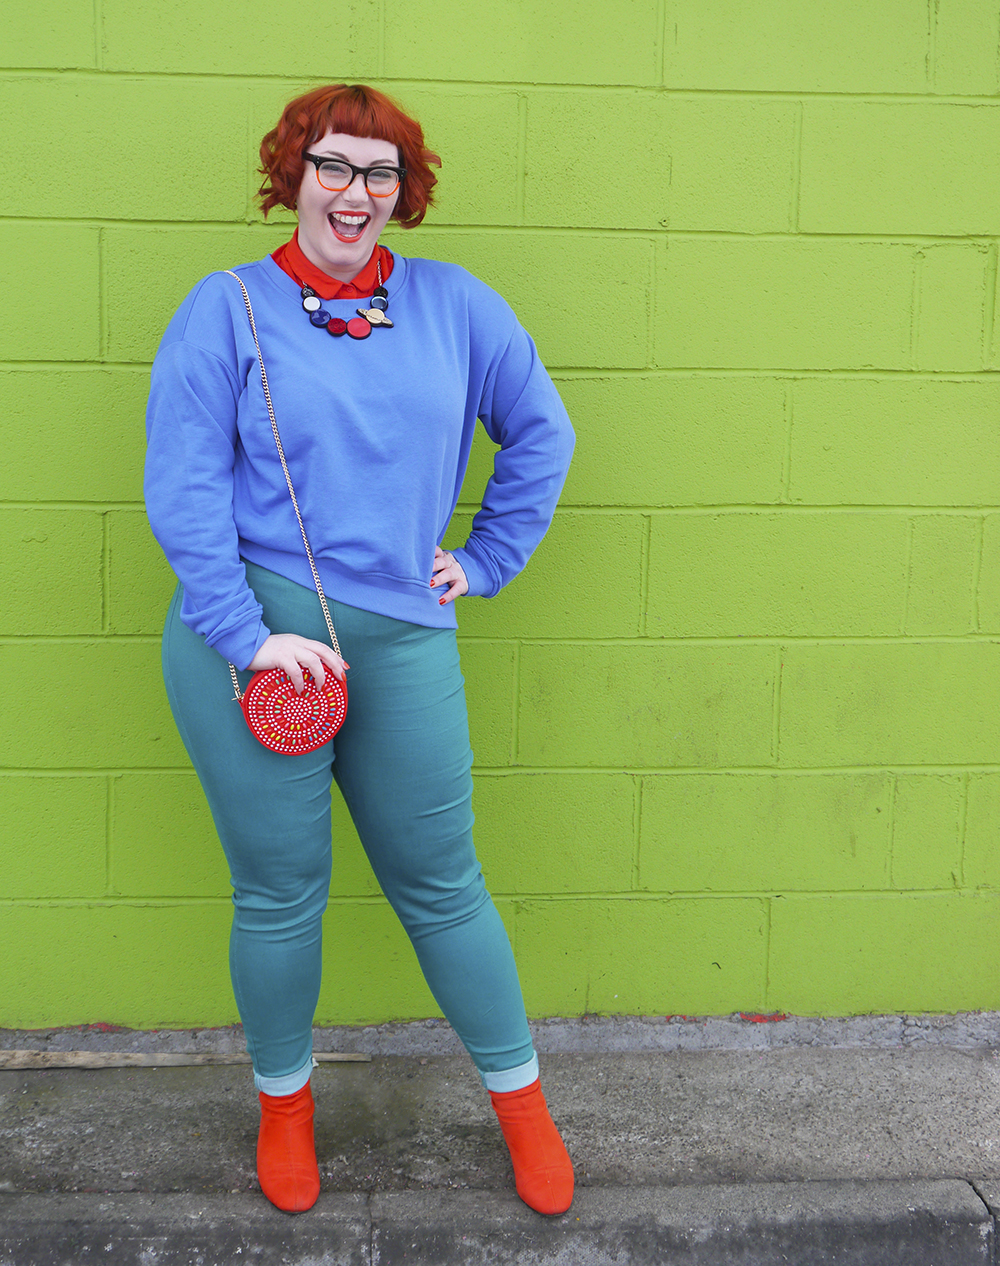 Red haired costume inspiration - Chuckie Finster from Rugrats